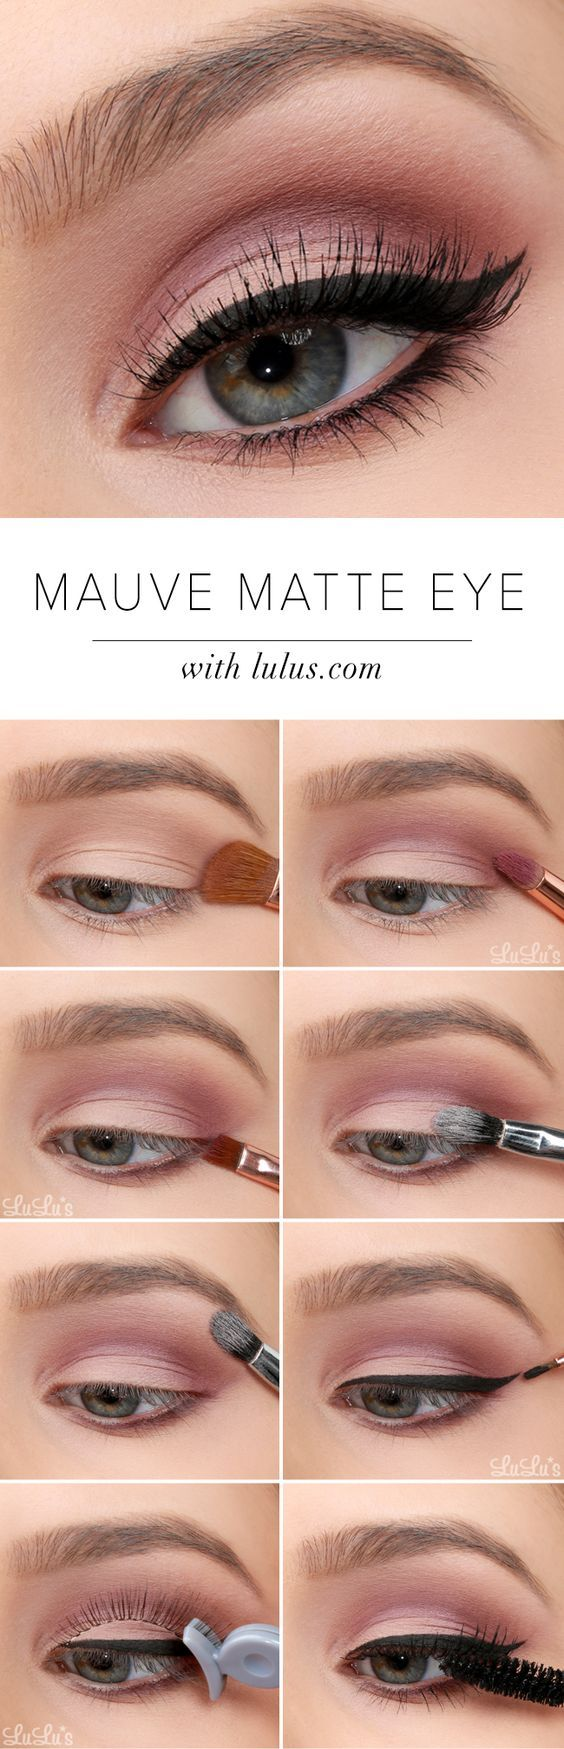 mauve-matte-eye-makeup via